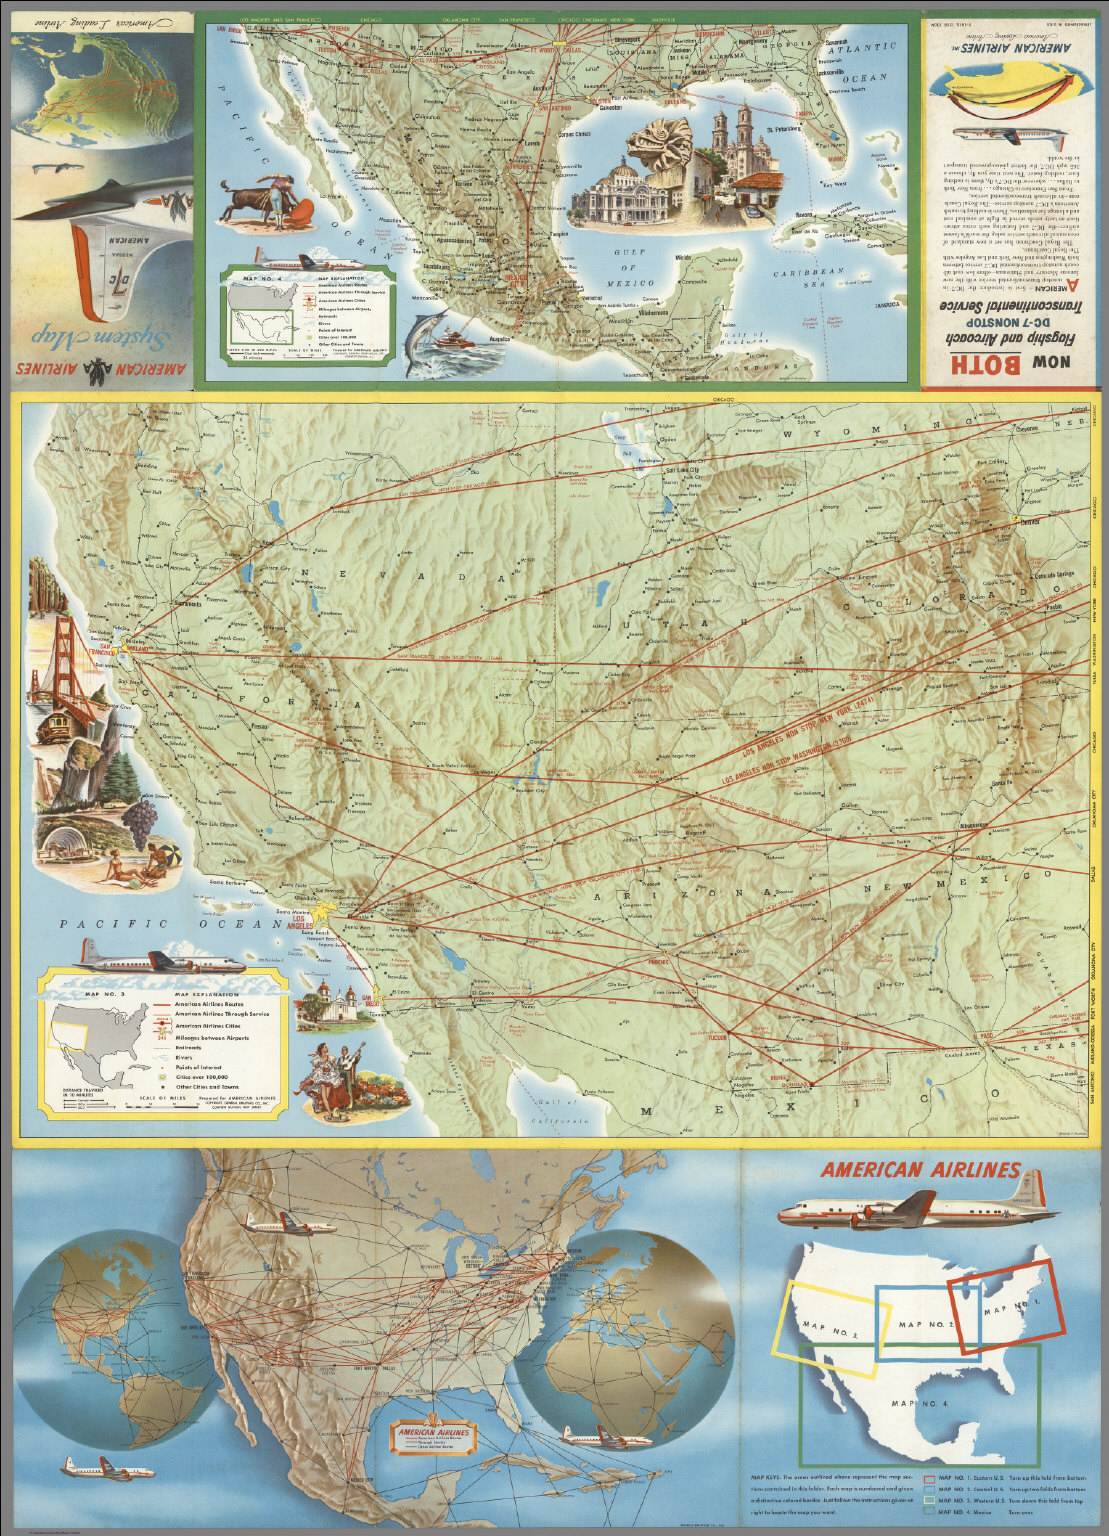 American Airlines Map No.3 (Western U.S.), Map No.4 (Mexico), Key Map, Route Map.